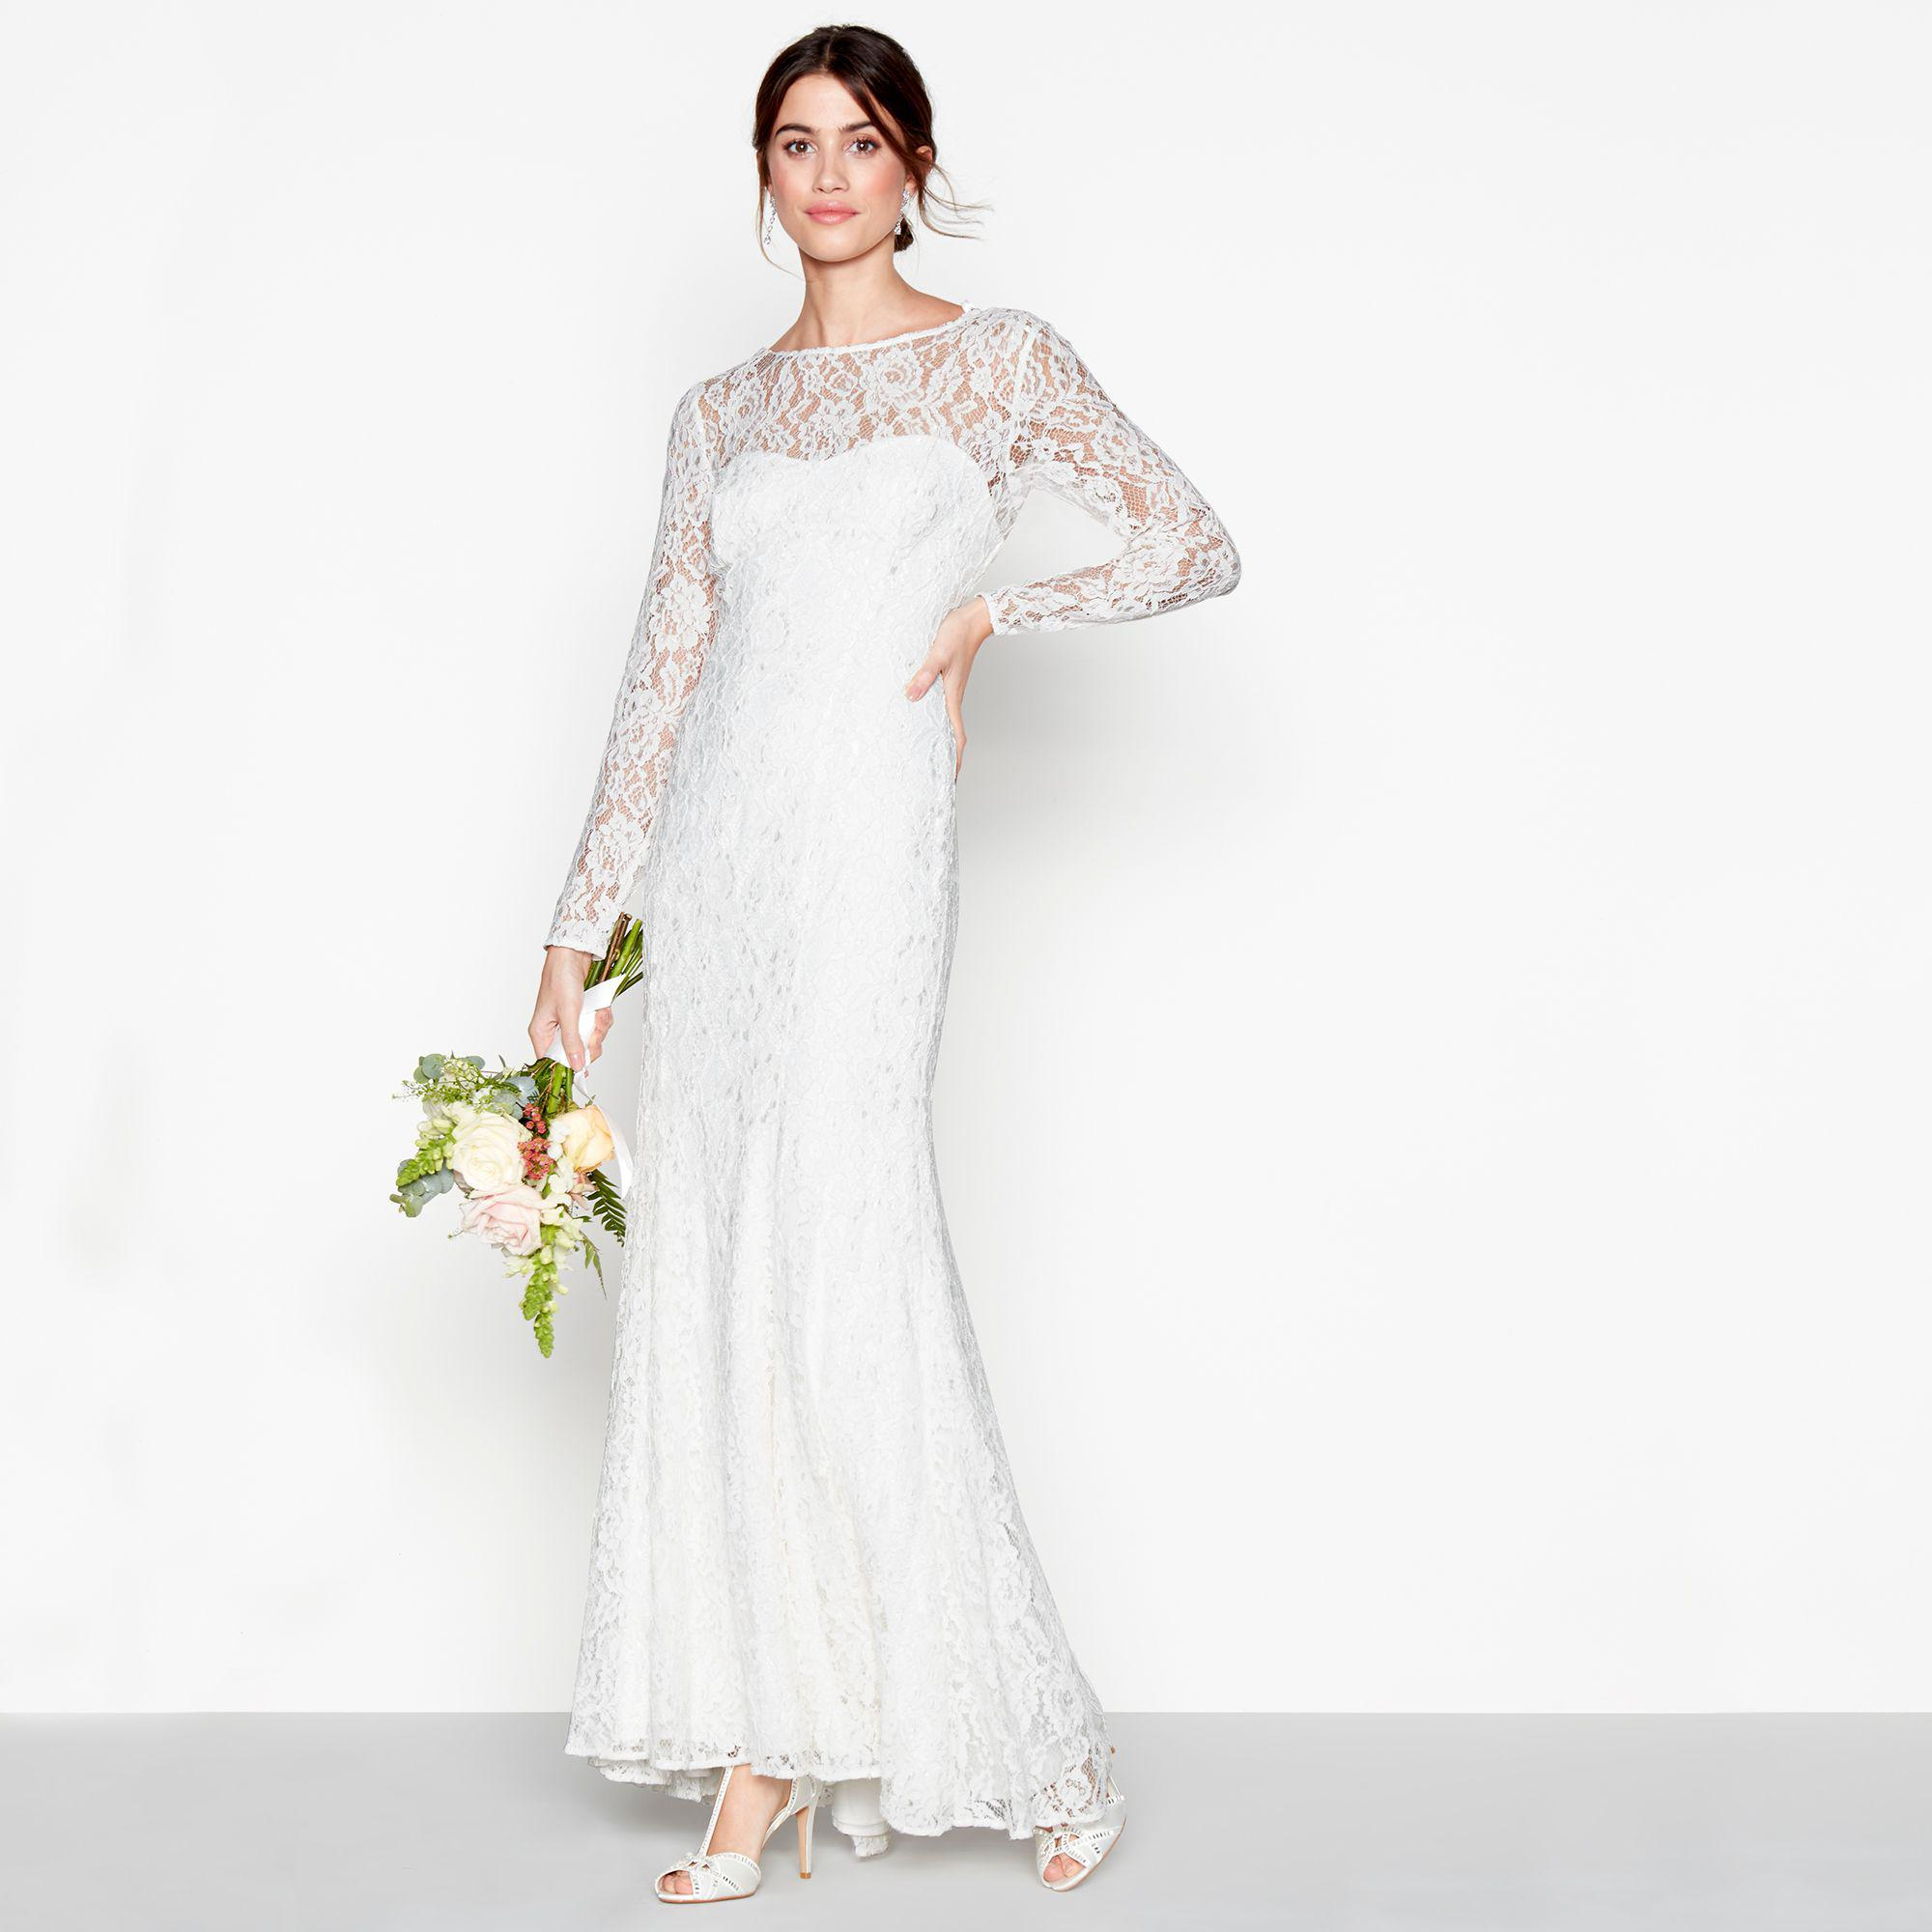 Ivory Lace Eleanor High Neck Long Sleeves Full Length Wedding Dress